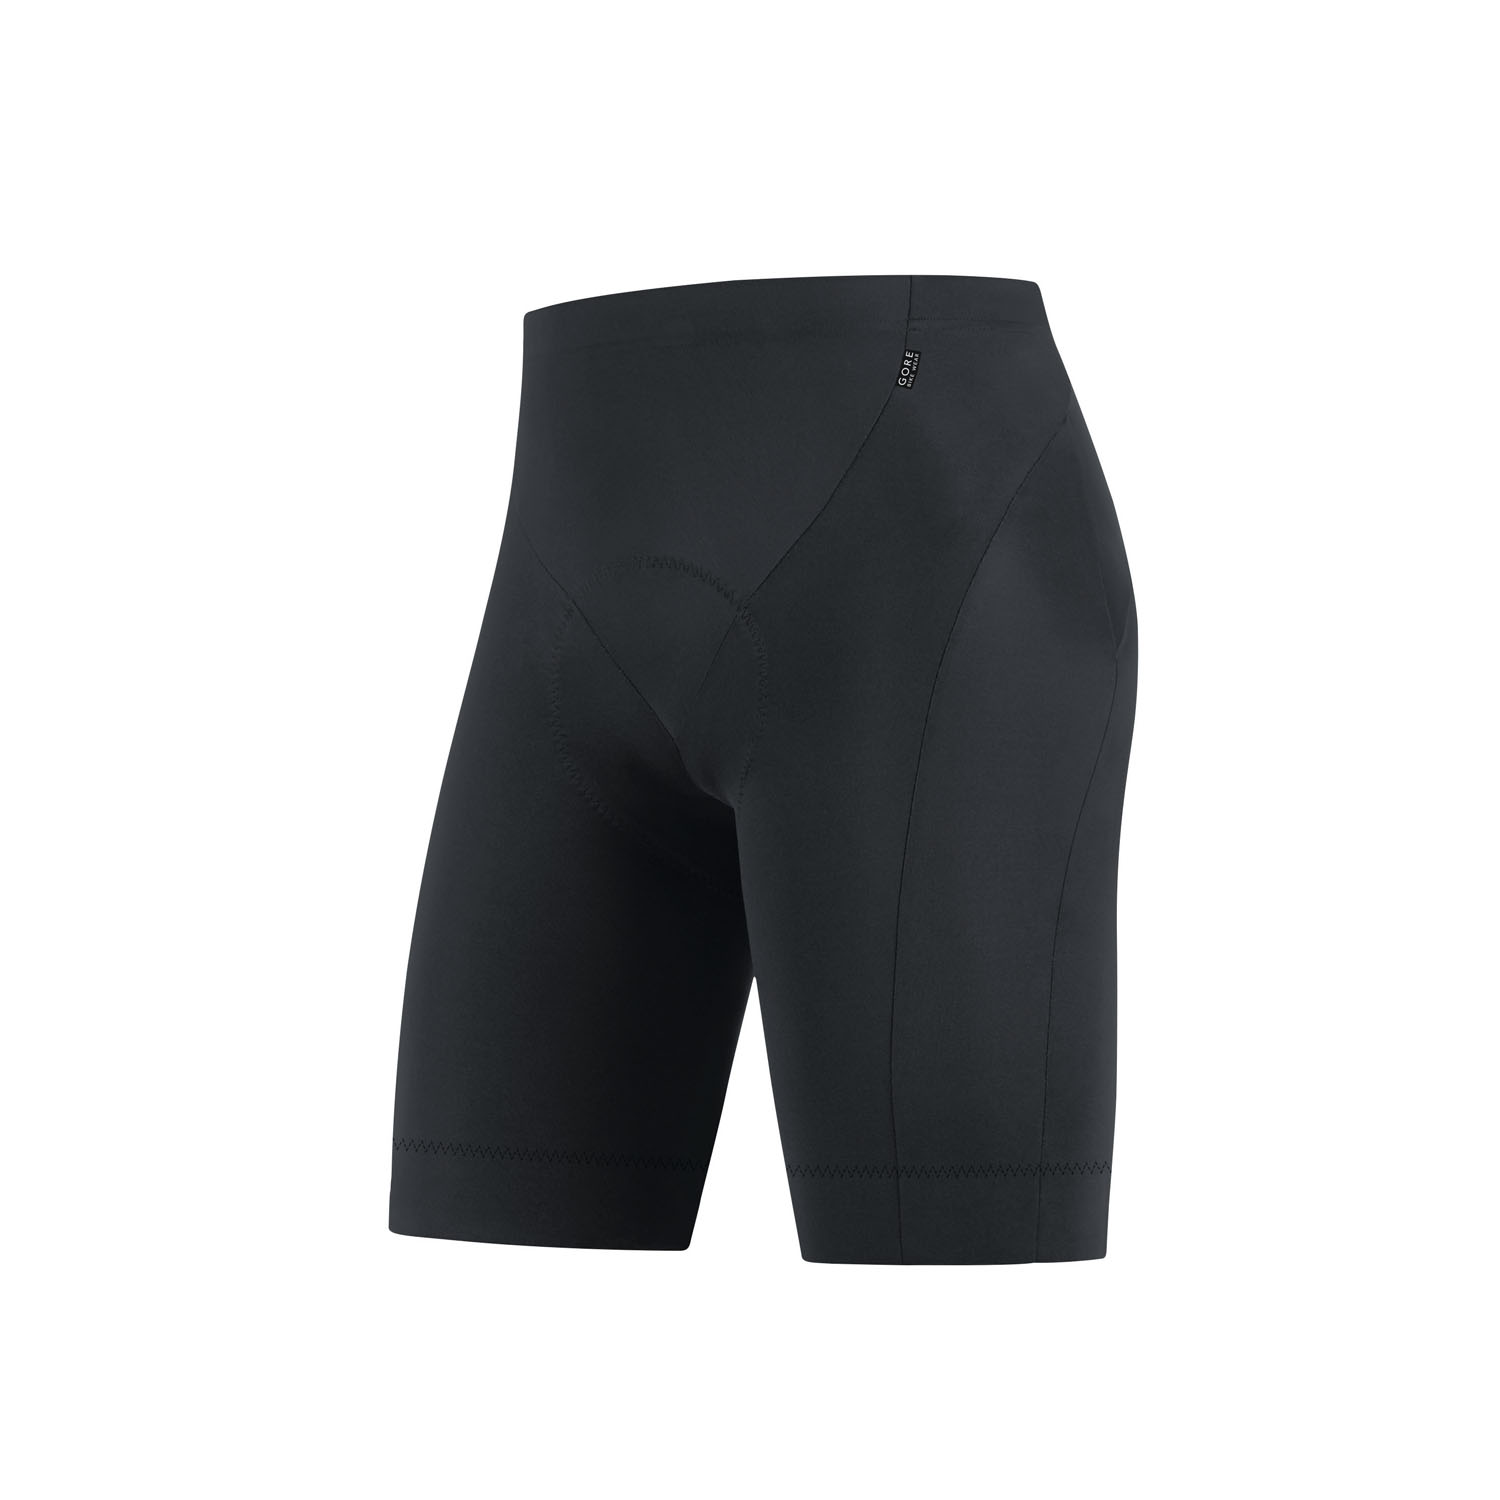 GORE 17SS ELEMENT TIGHTS SHORTS+